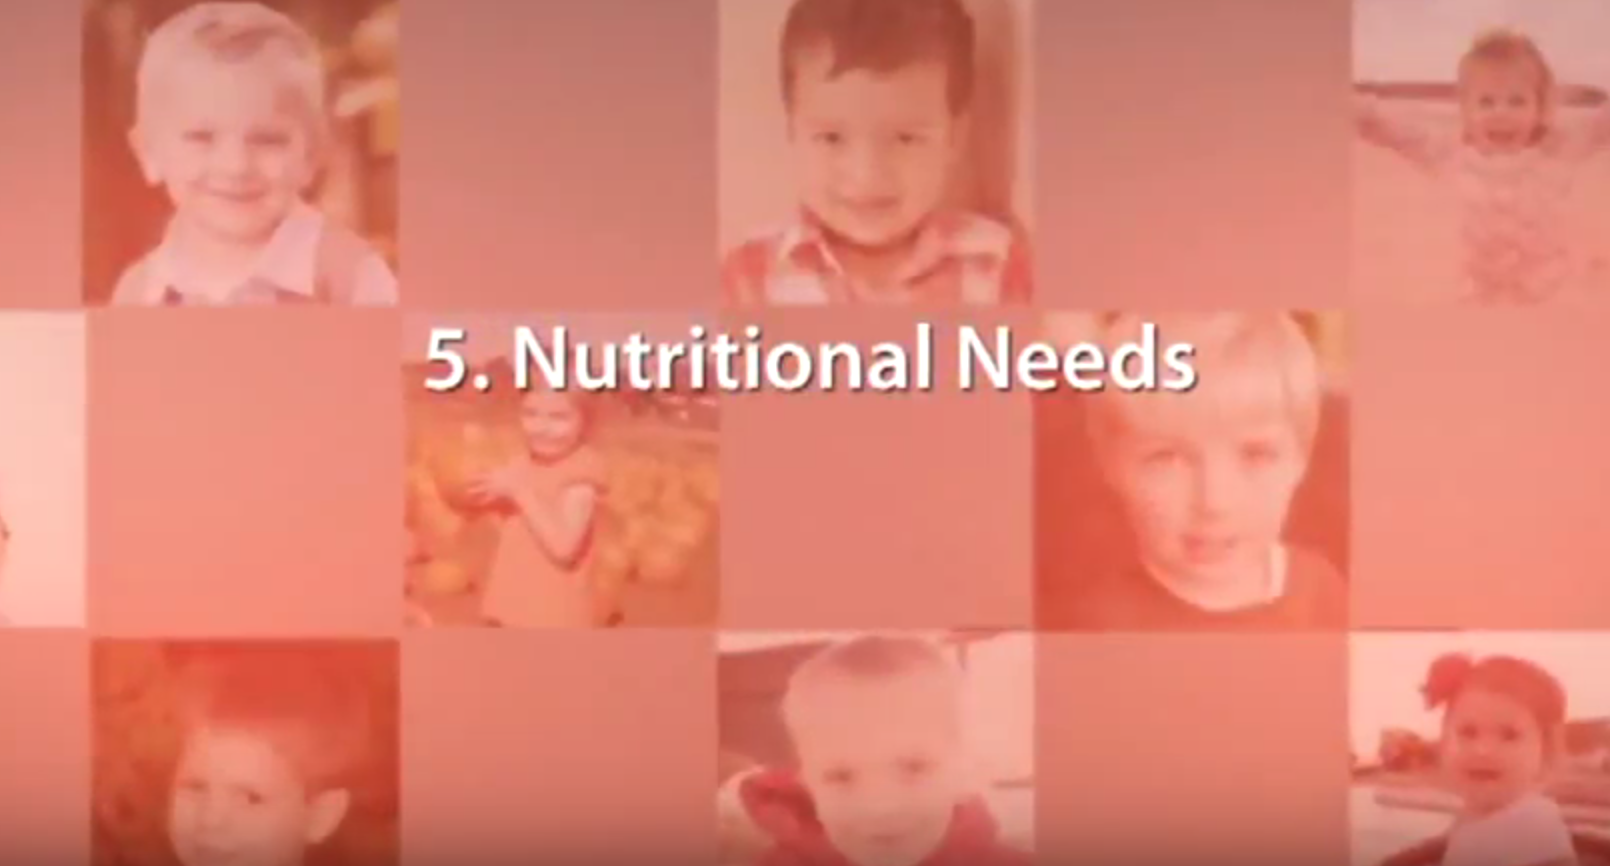 Chapter 5 – Nutritional Needs